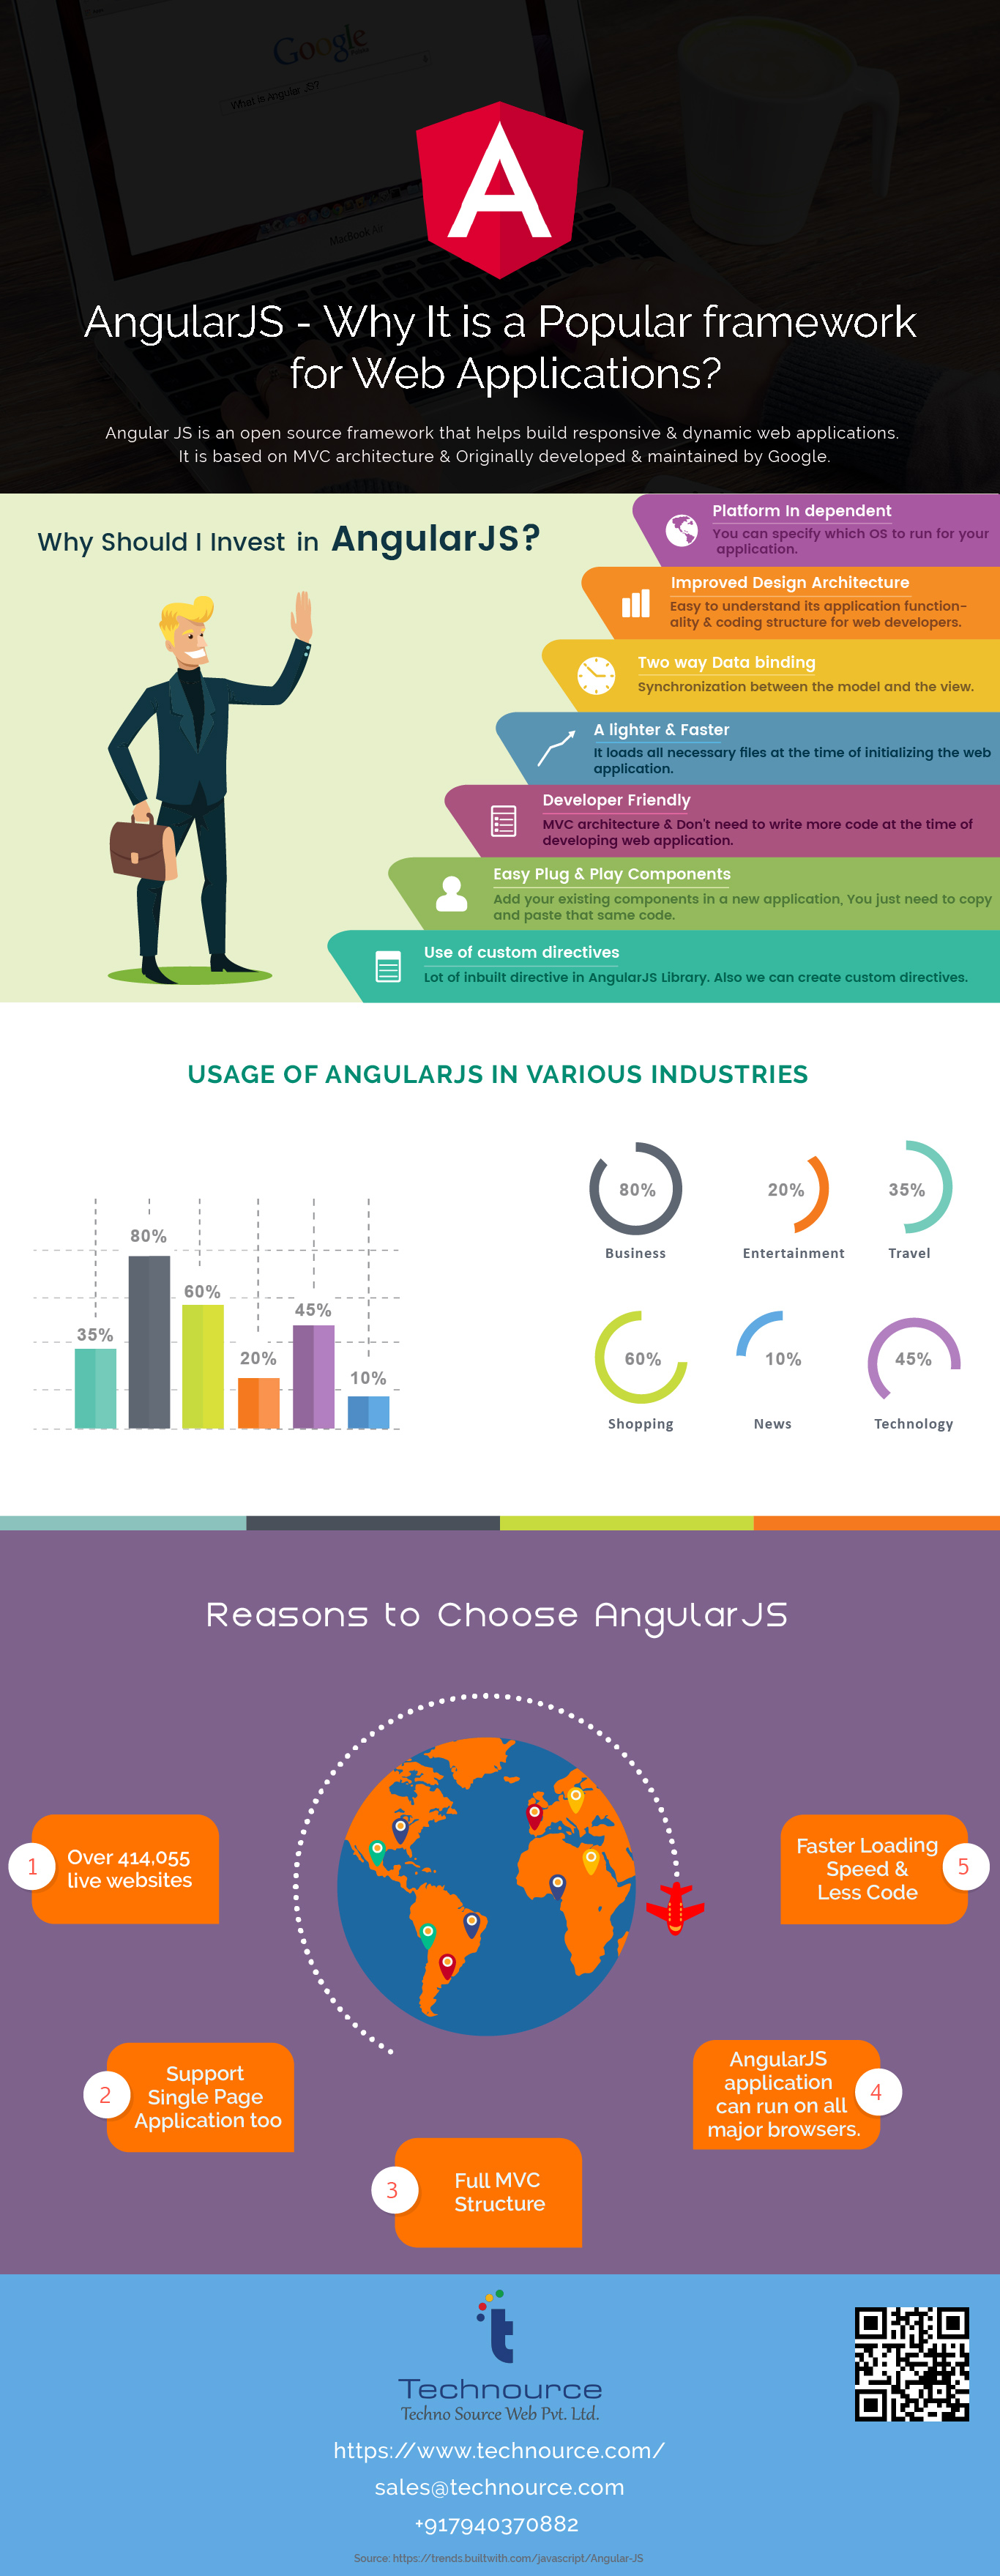 Why AngularJS Technology is a Better for Your Business? - Image 1